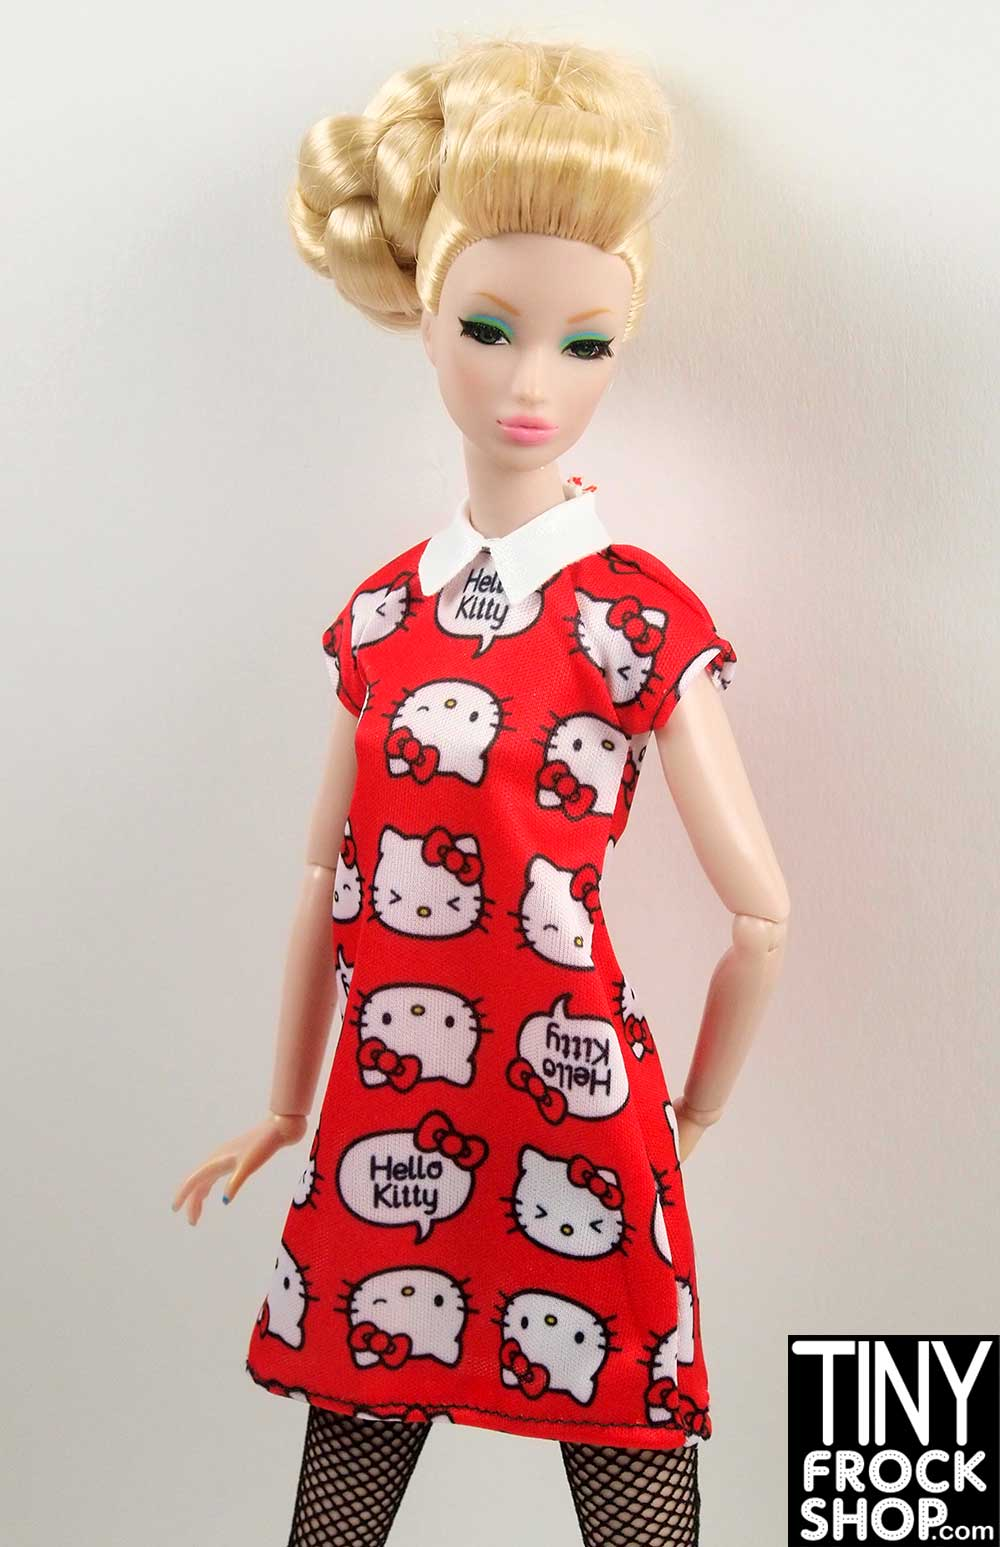 c1b9da32e Tiny Frock Shop Barbie FKR67 Hello Kitty Red Graphic Geek Chic Red Dress